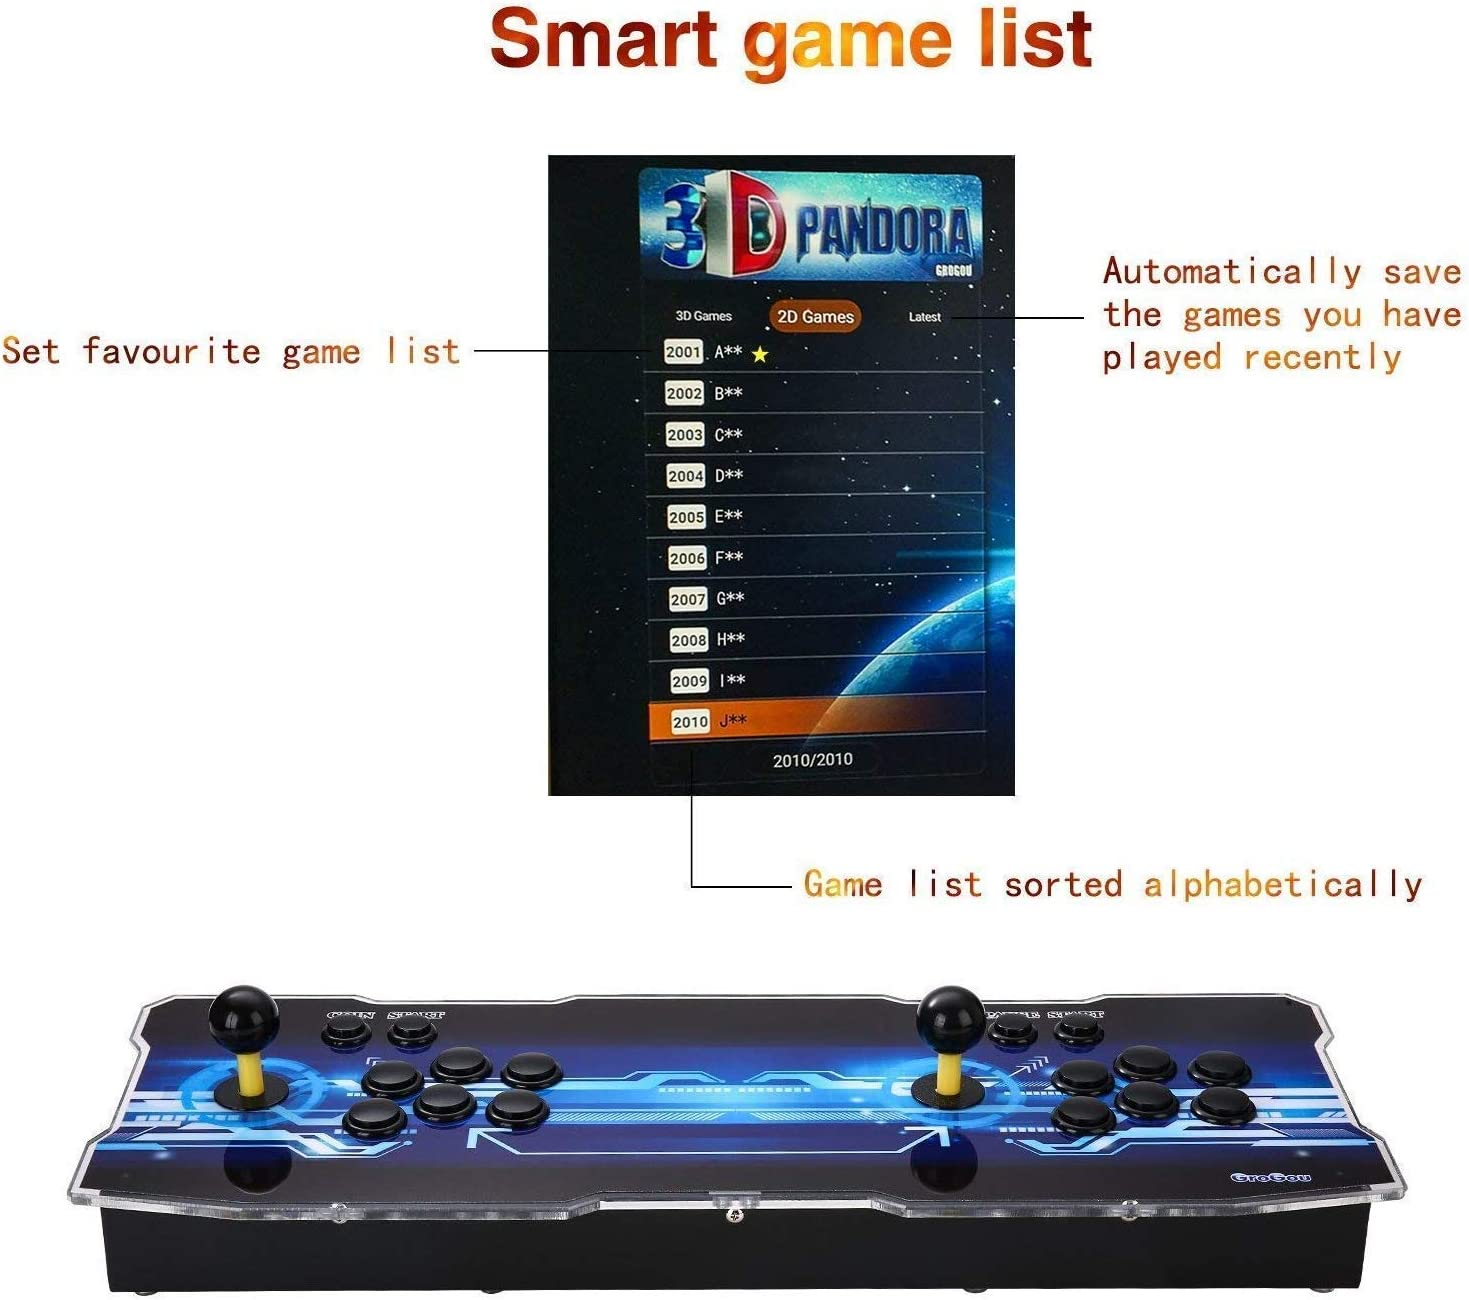 Amazon.es: [Arcade Game Console 2700] Pandora Box 9D 2700 Juegos ...